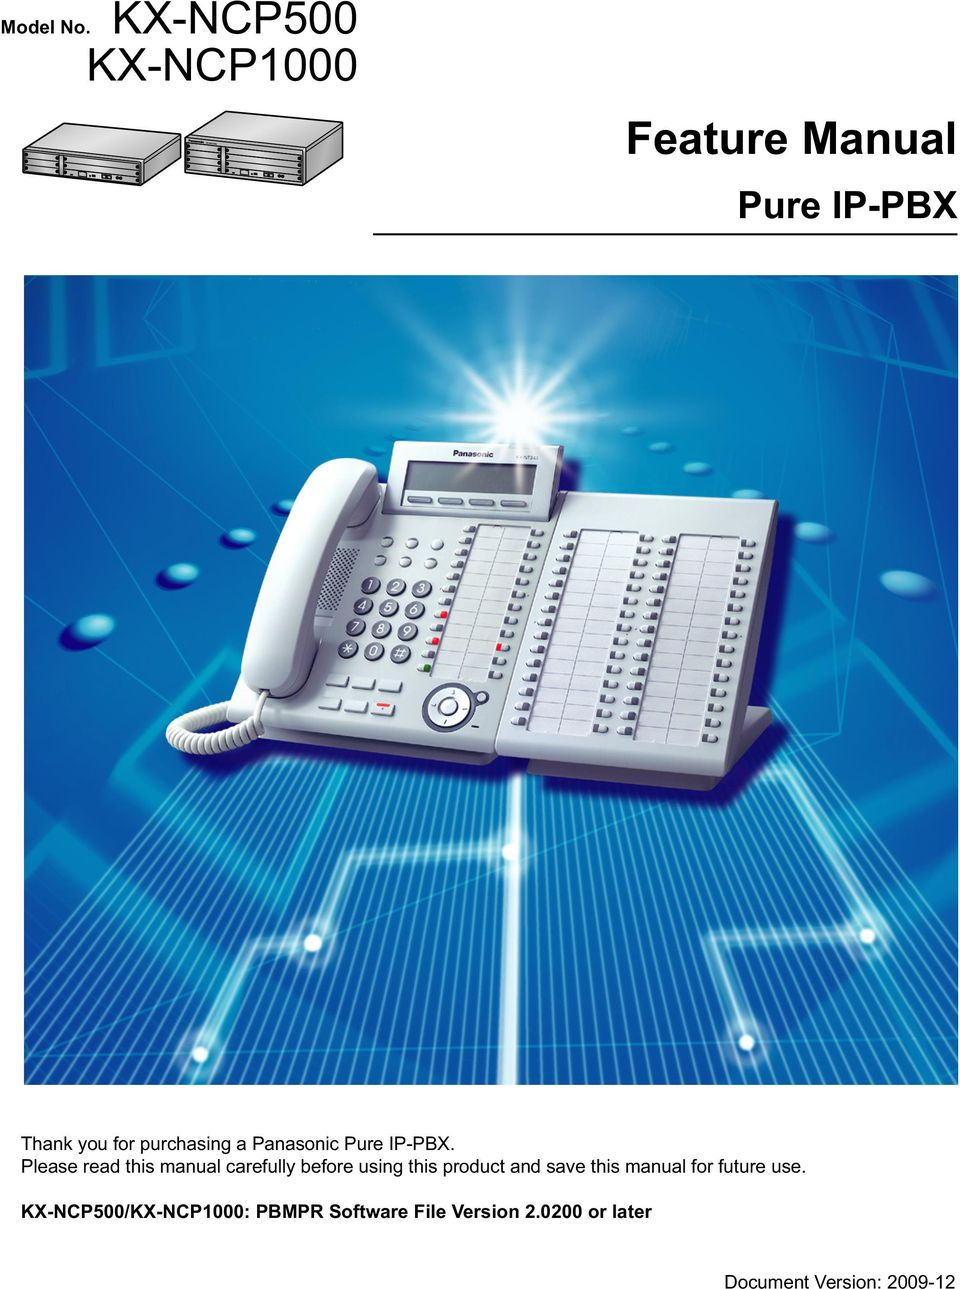 KXNCP1000, NCP1000 Thank you for purchasing a Panasonic Pure IP-PBX.